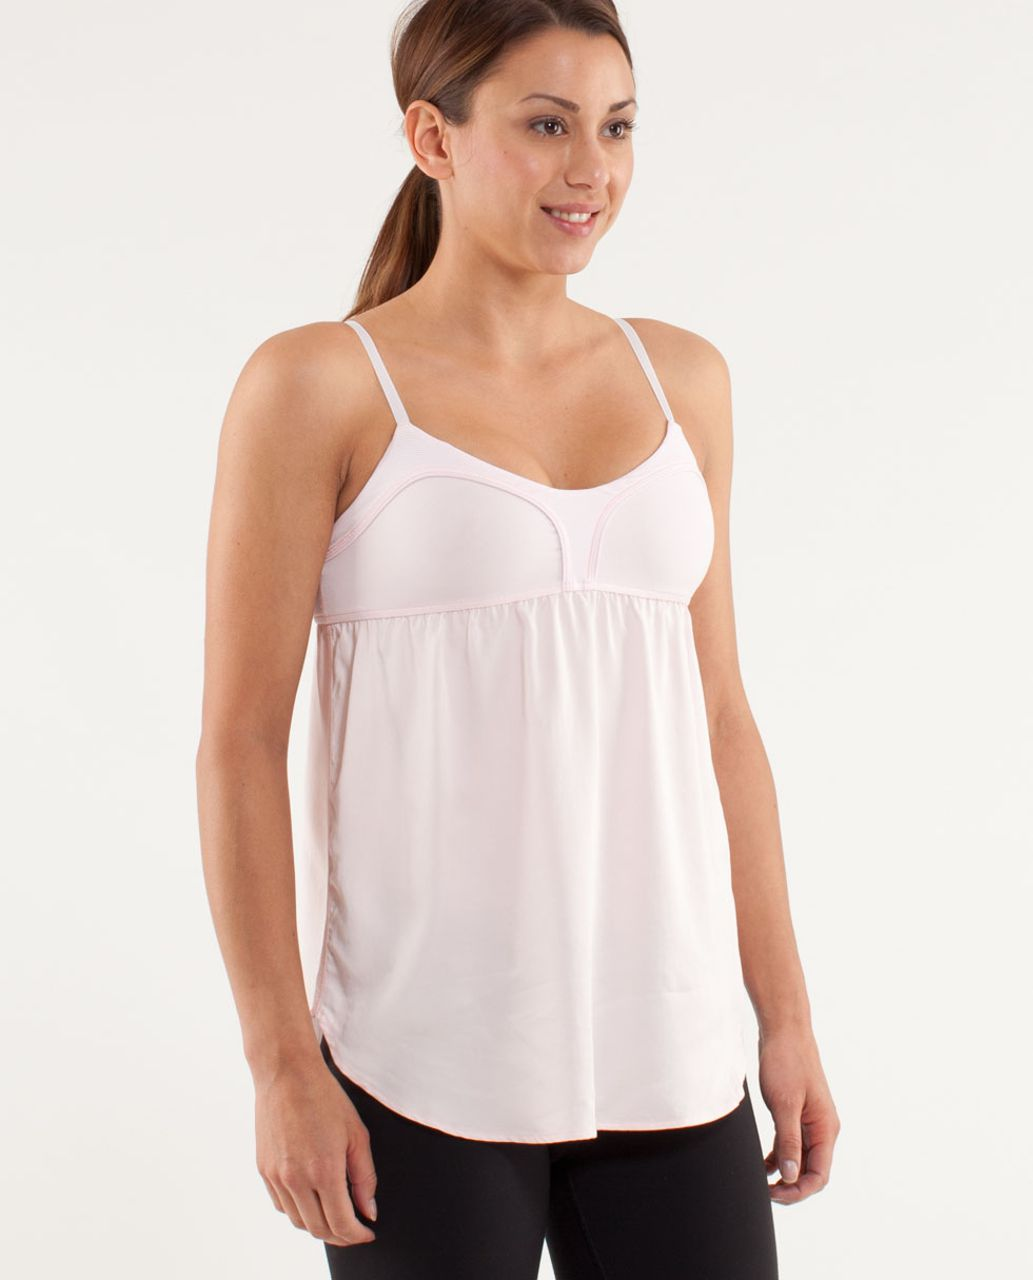 c4fc7061b3d17 Lululemon Find Bliss Tank - Pink Mist   Wee Stripe White Blush Quartz - lulu  fanatics